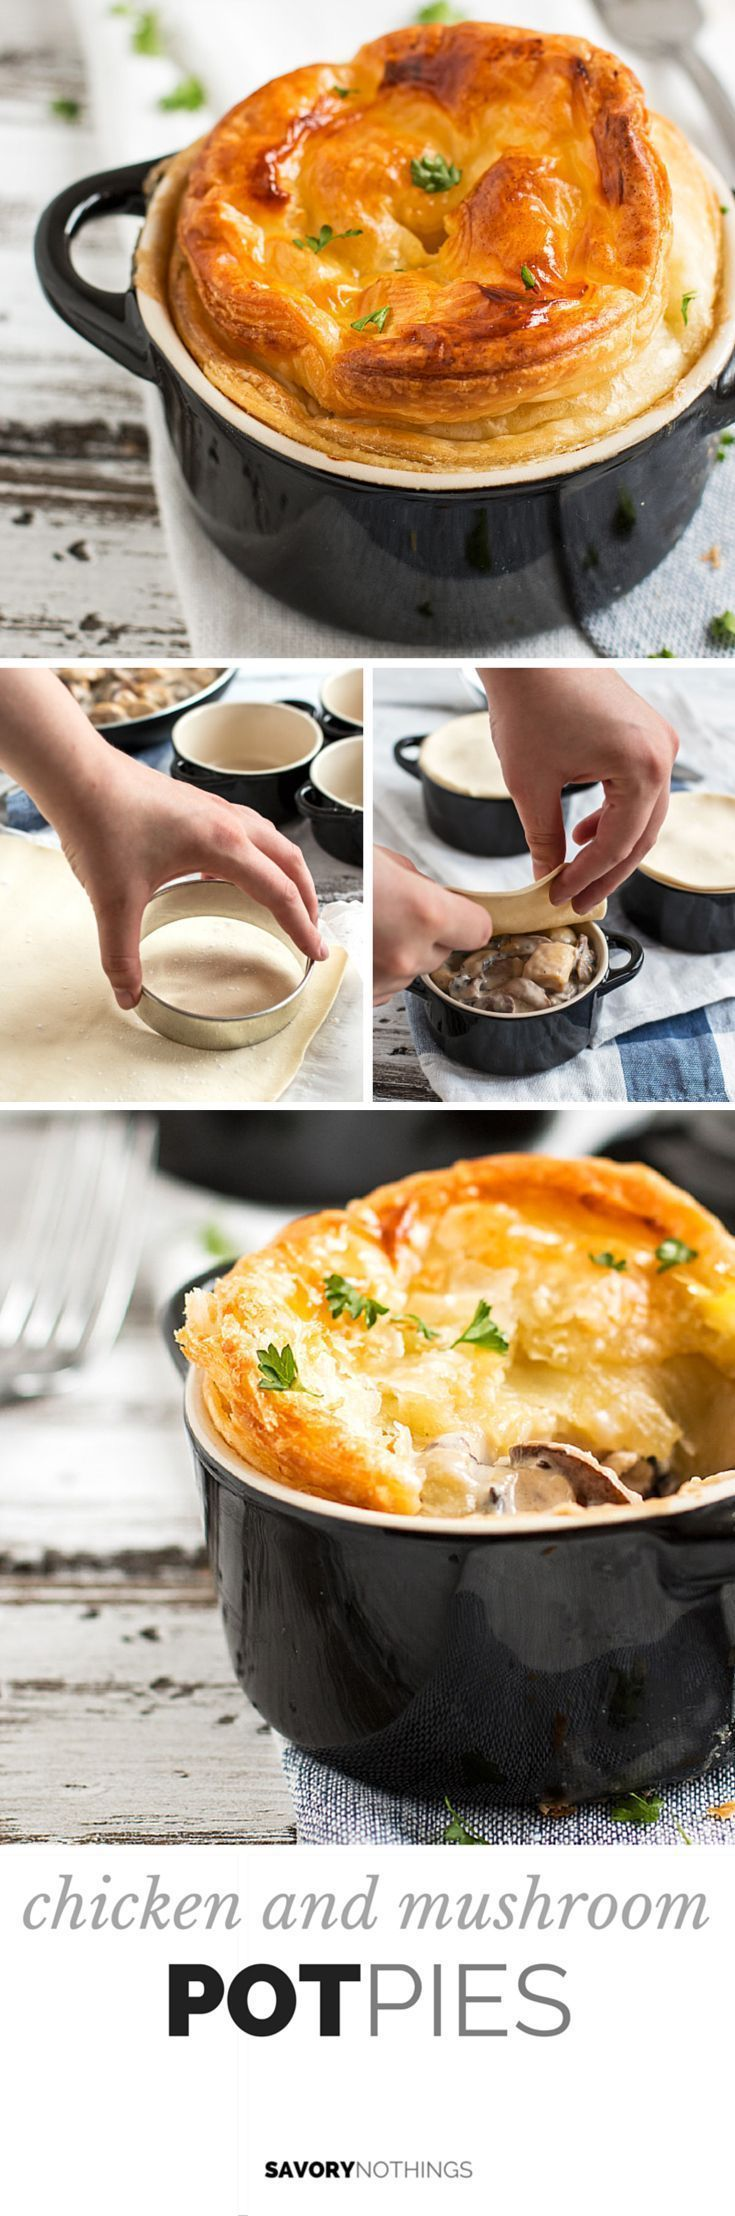 Pie recipes chicken recipes comfort food recipes chicken and pie recipes chicken recipes comfort food recipes chicken and mushroom pot pies recipe forumfinder Images